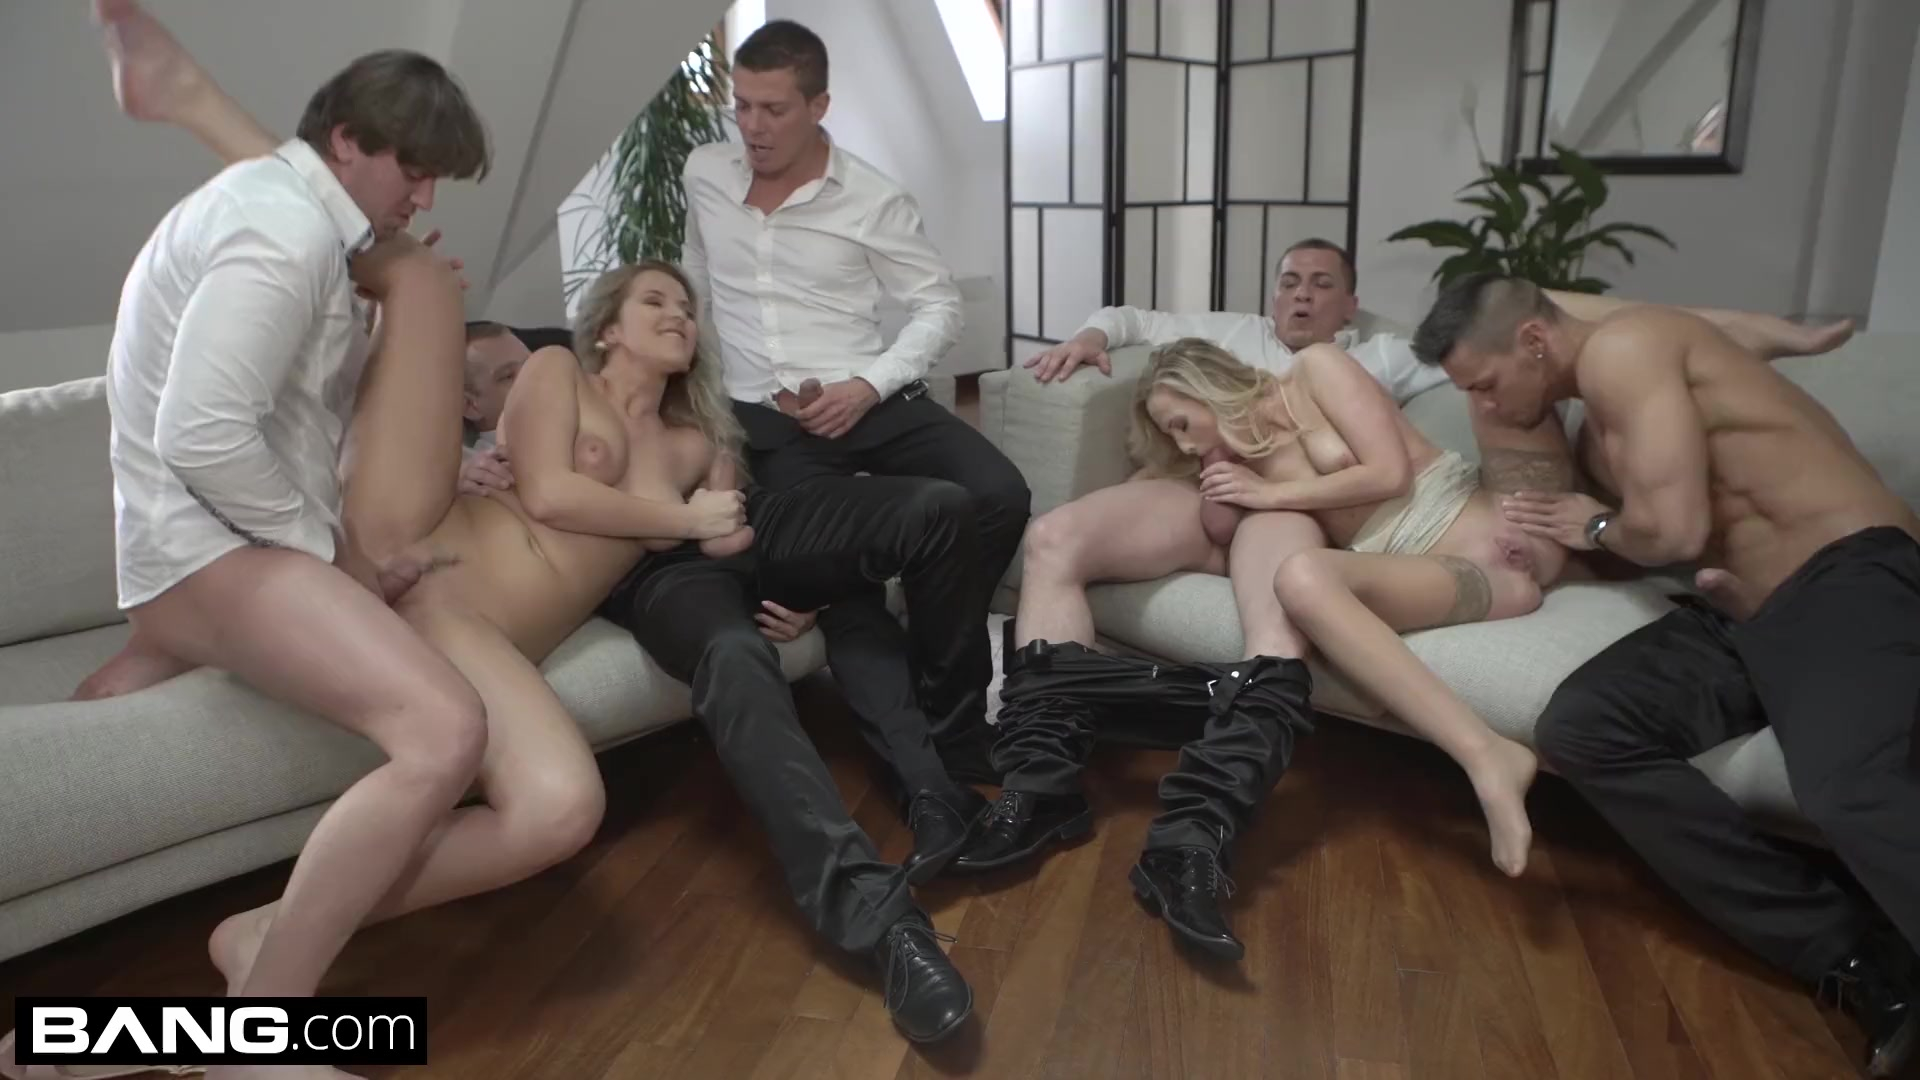 mother-daughter-gangbang-free-young-males-for-sex